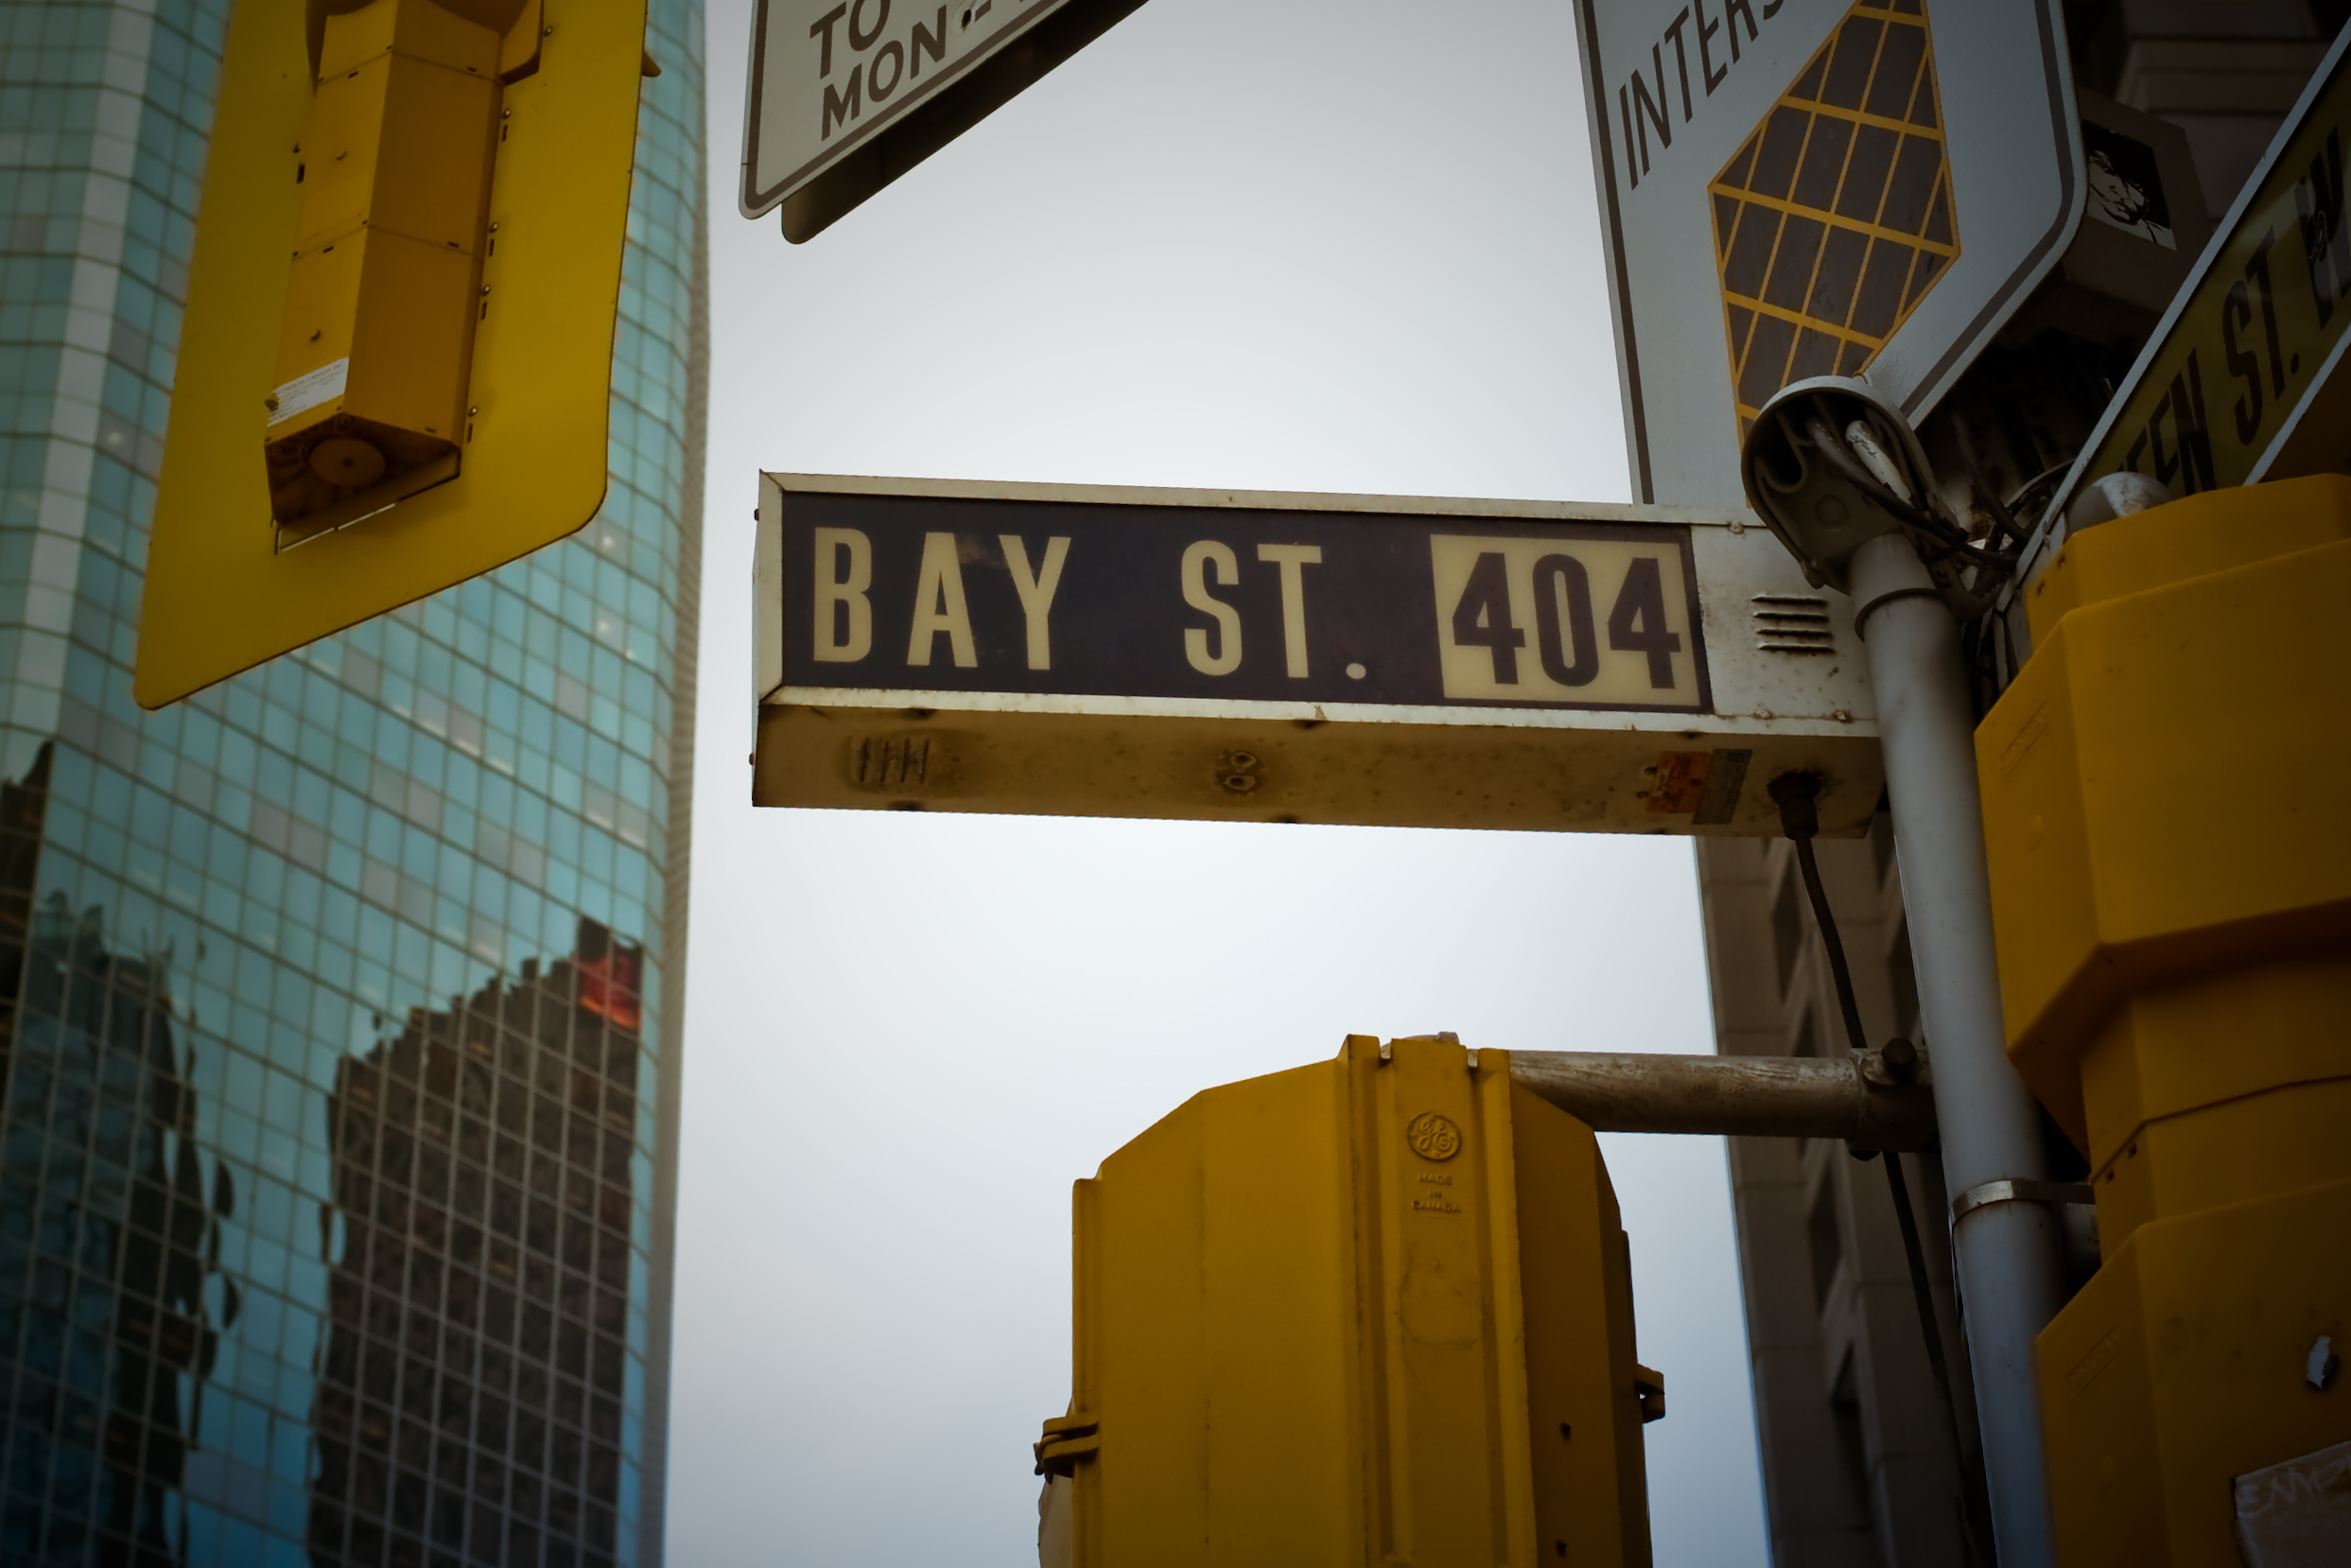 404 Bay Street: Not Found